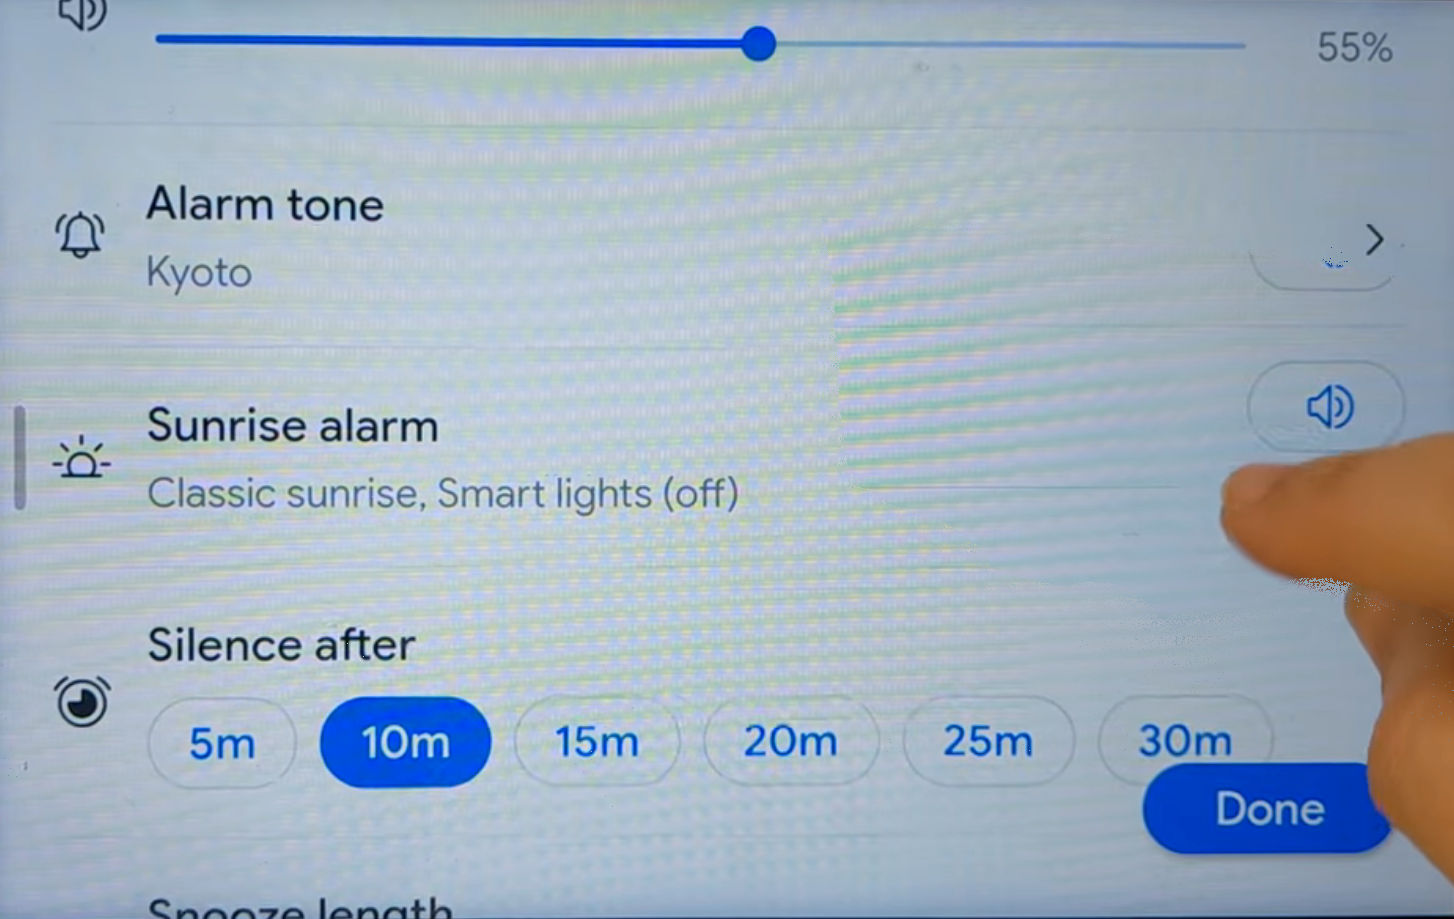 Nest Hubs are getting sunrise alarms, family sticky notes, and the Google weather frog wallpaper Other smart displays too, but some of these are server-side changes